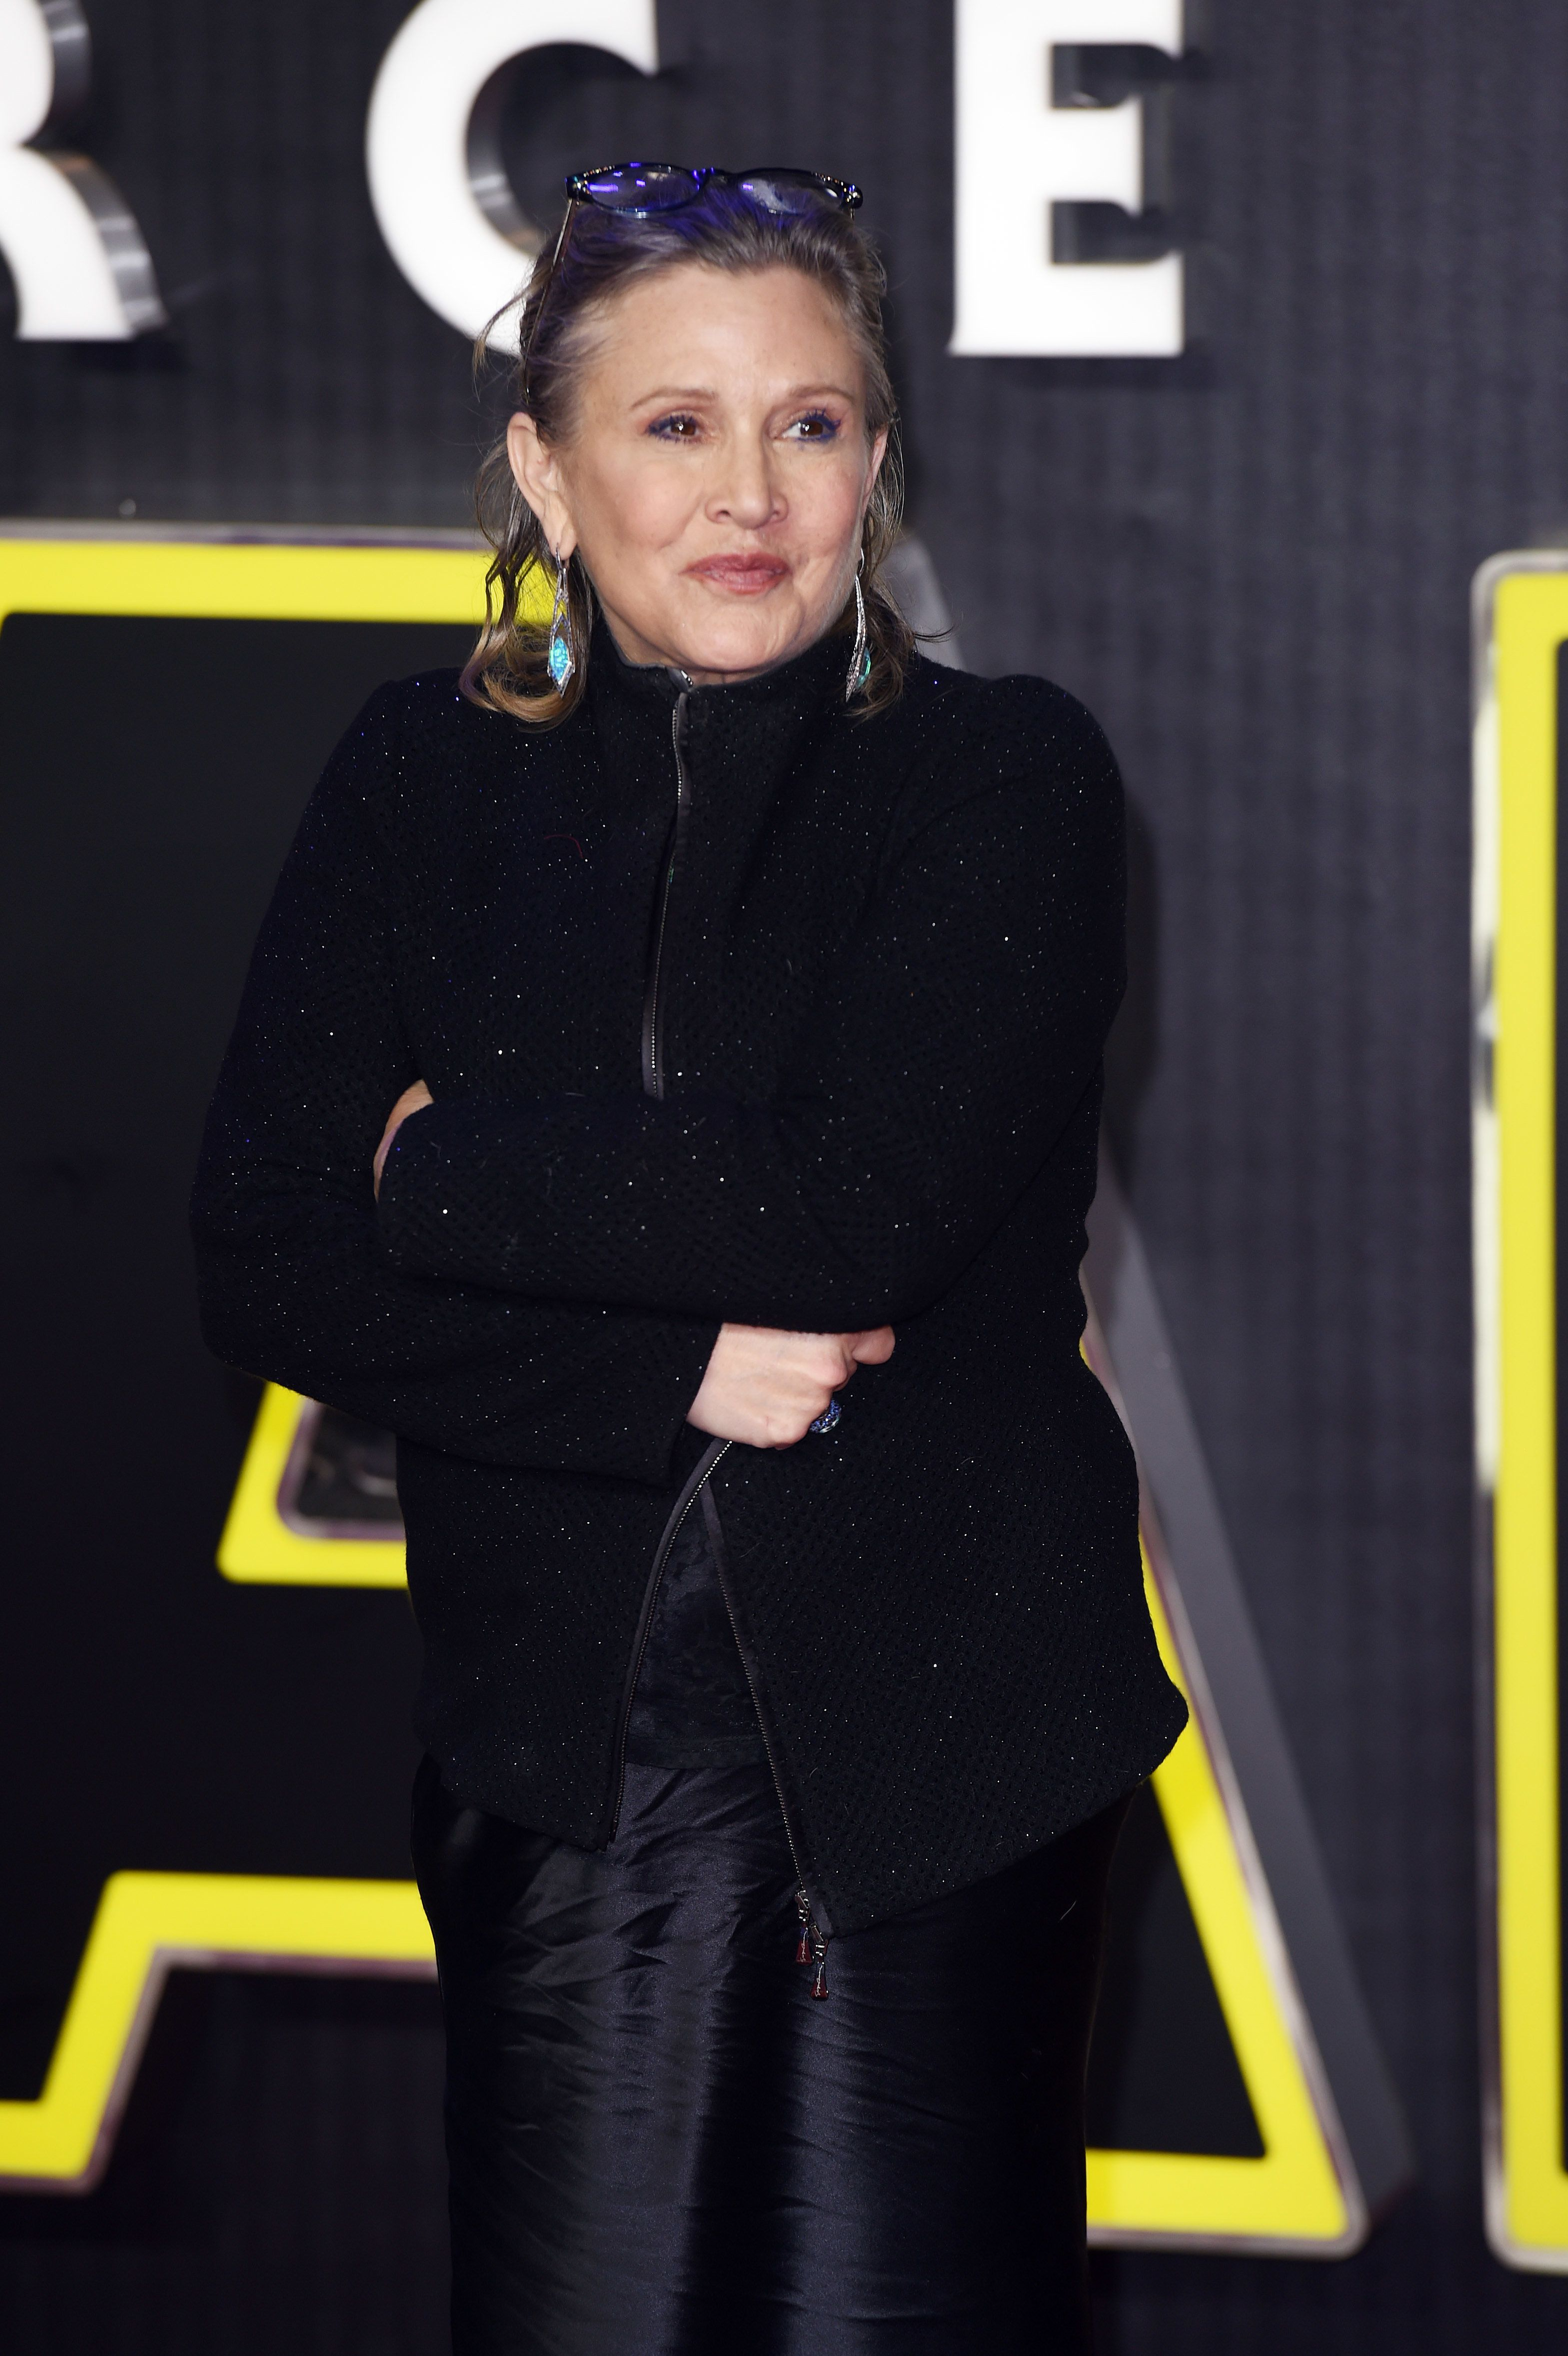 Carrie Fisher Once Sent An Actual Cow's Tongue To A Producer Who Sexually Harassed Her